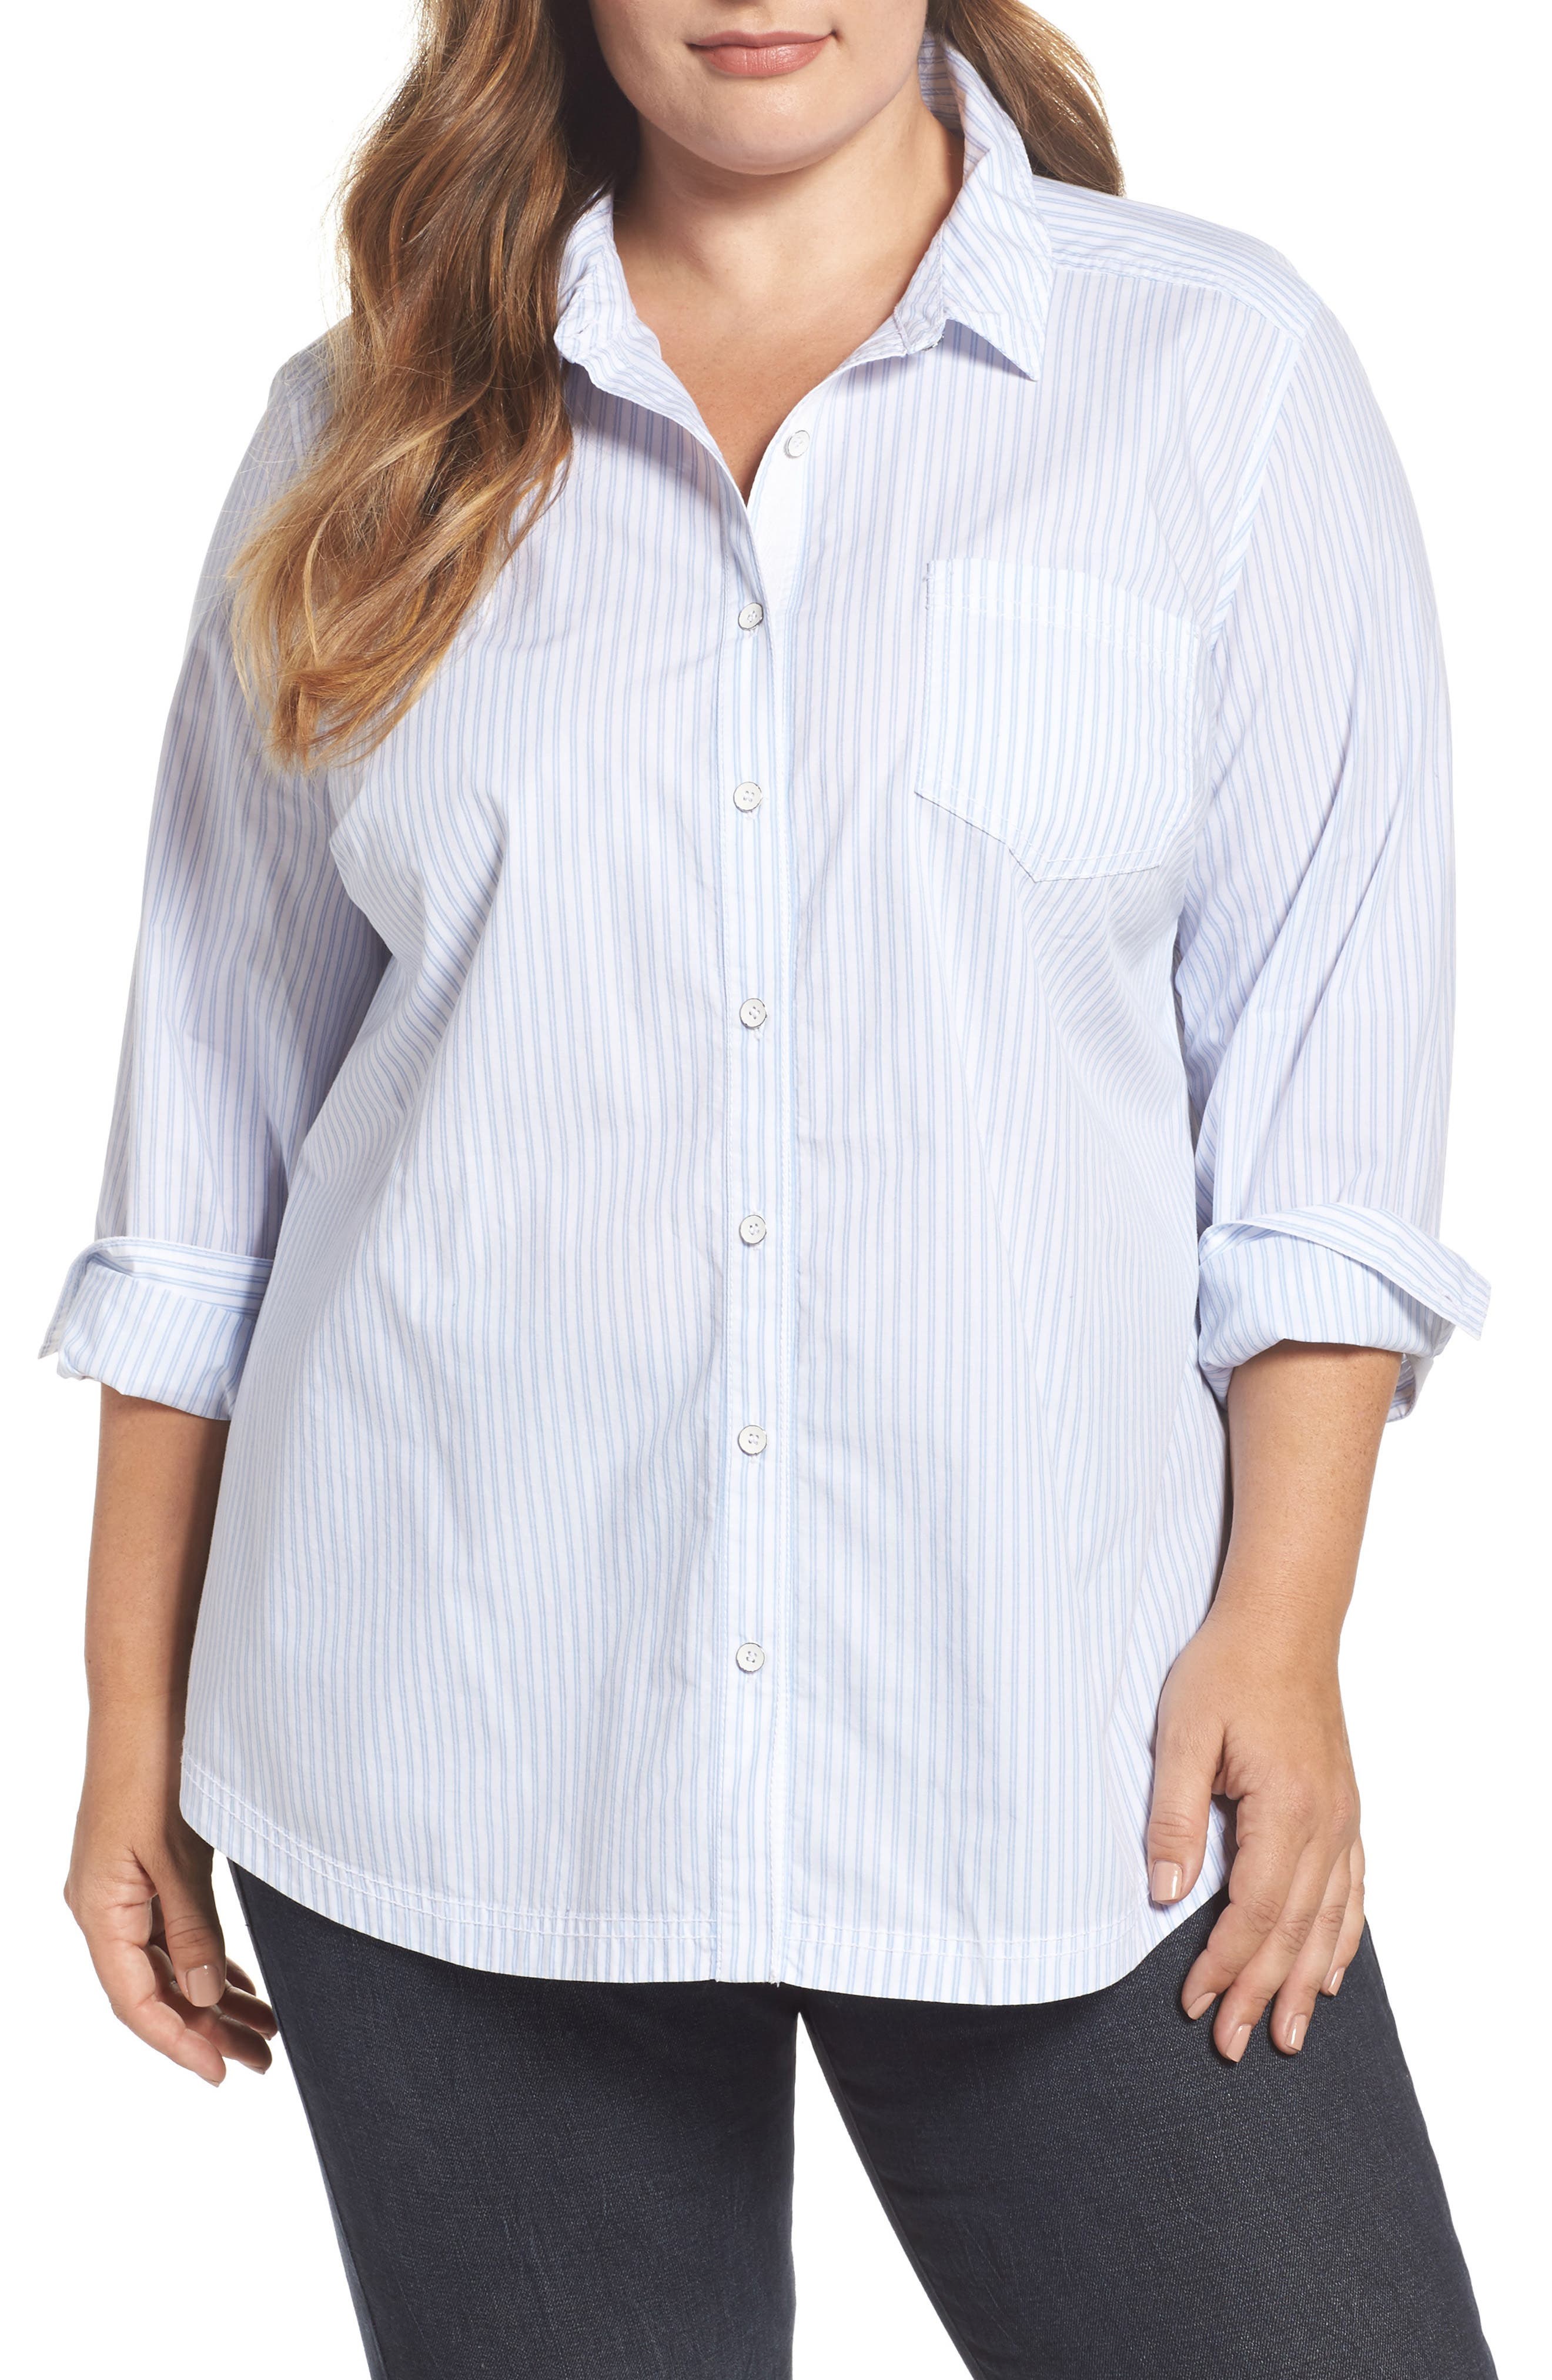 Stripe Button Front Shirt,                             Main thumbnail 1, color,                             420